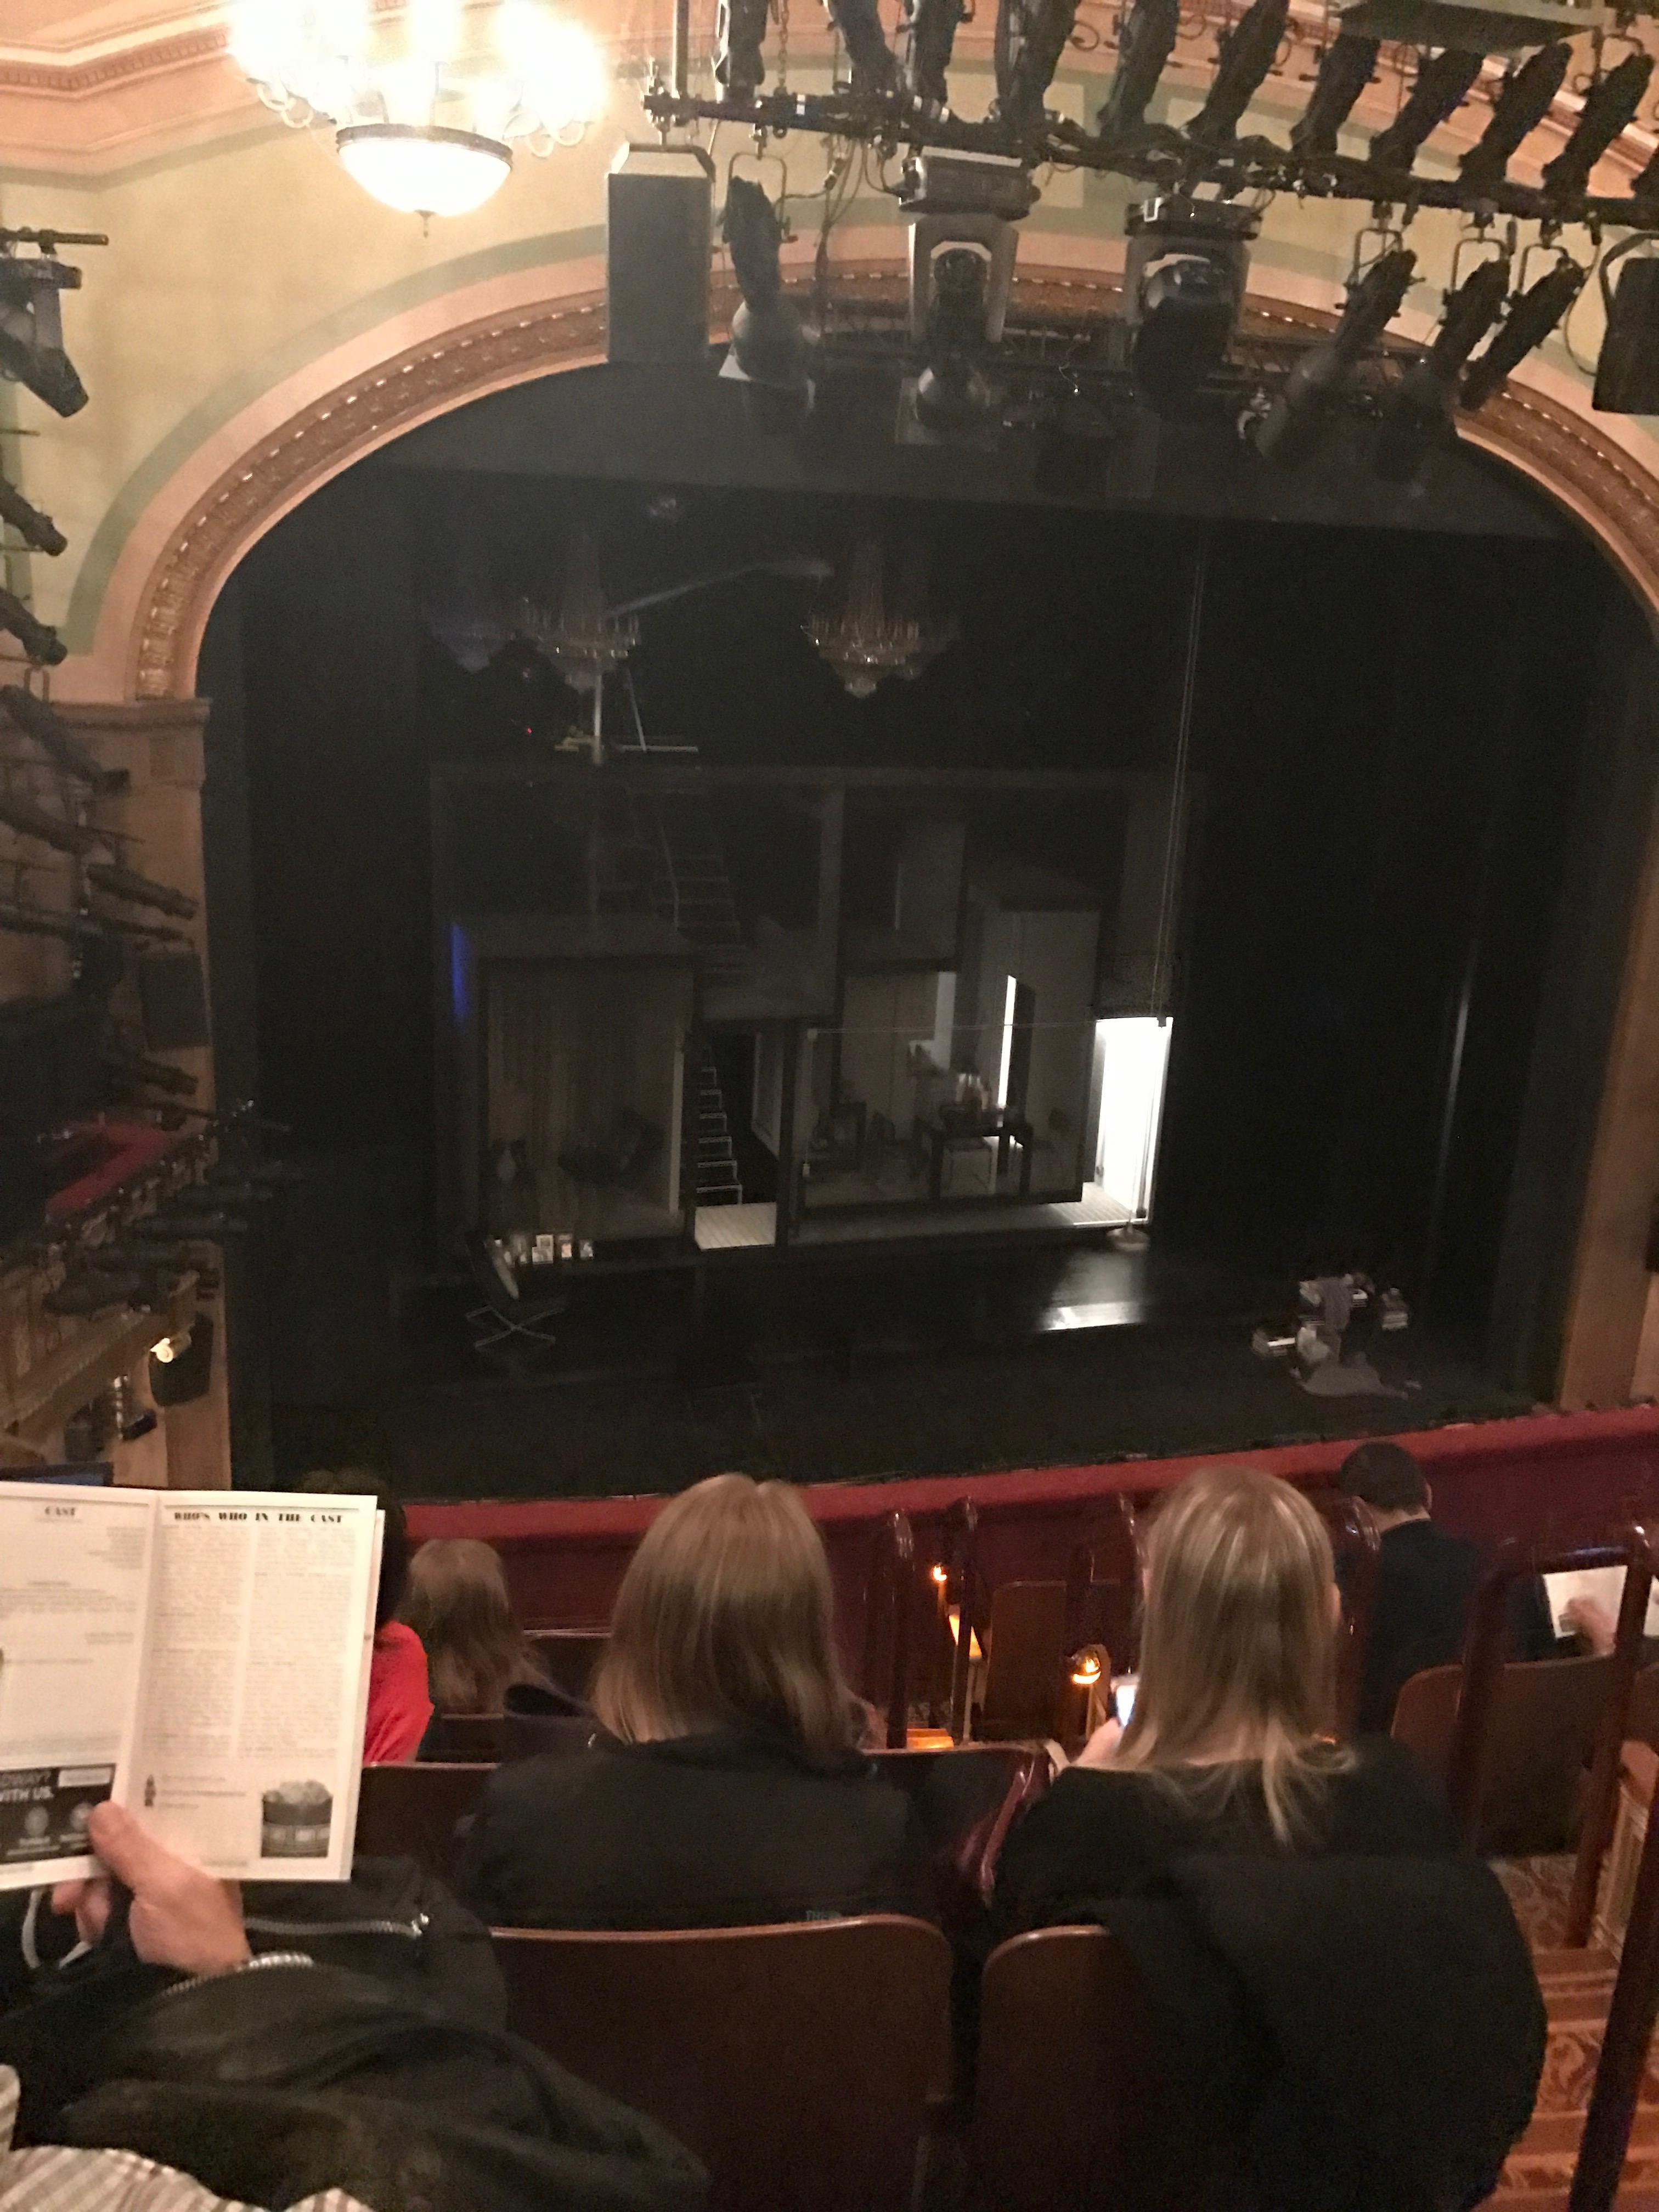 Booth Theatre Section Mezzanine L Row G Seat 5